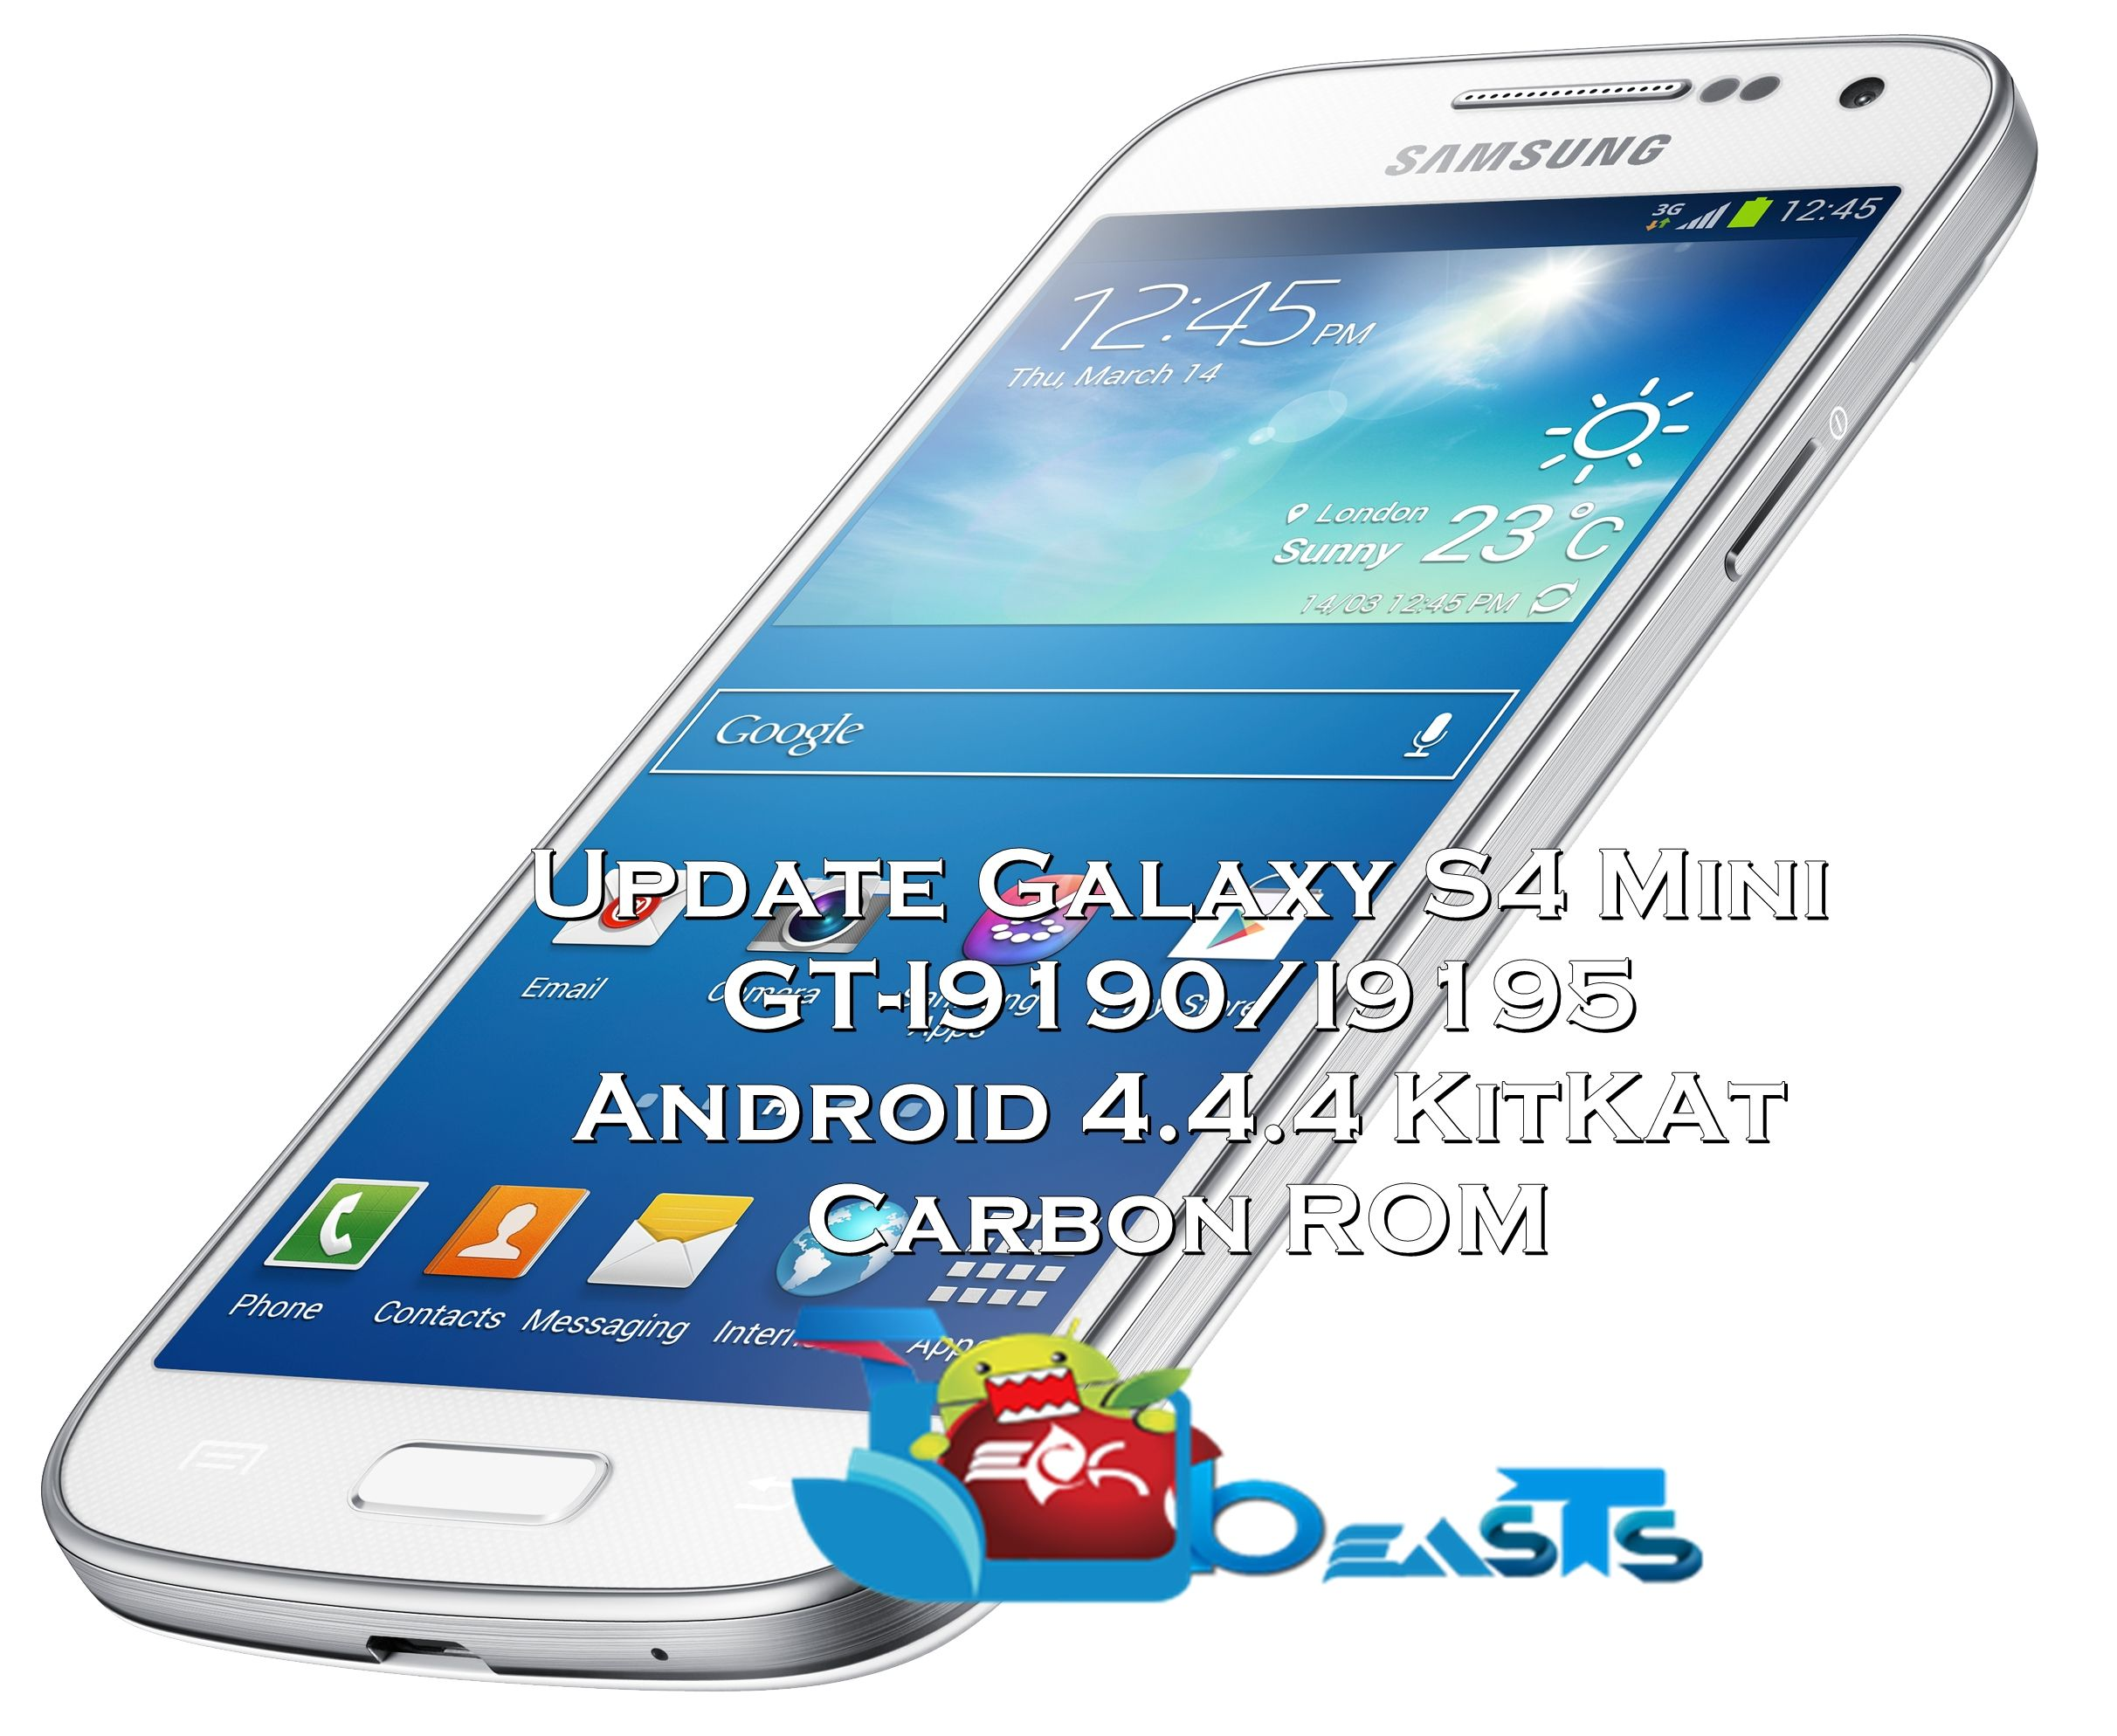 Galaxy S4 Mini Android 4.4.4 KitKat